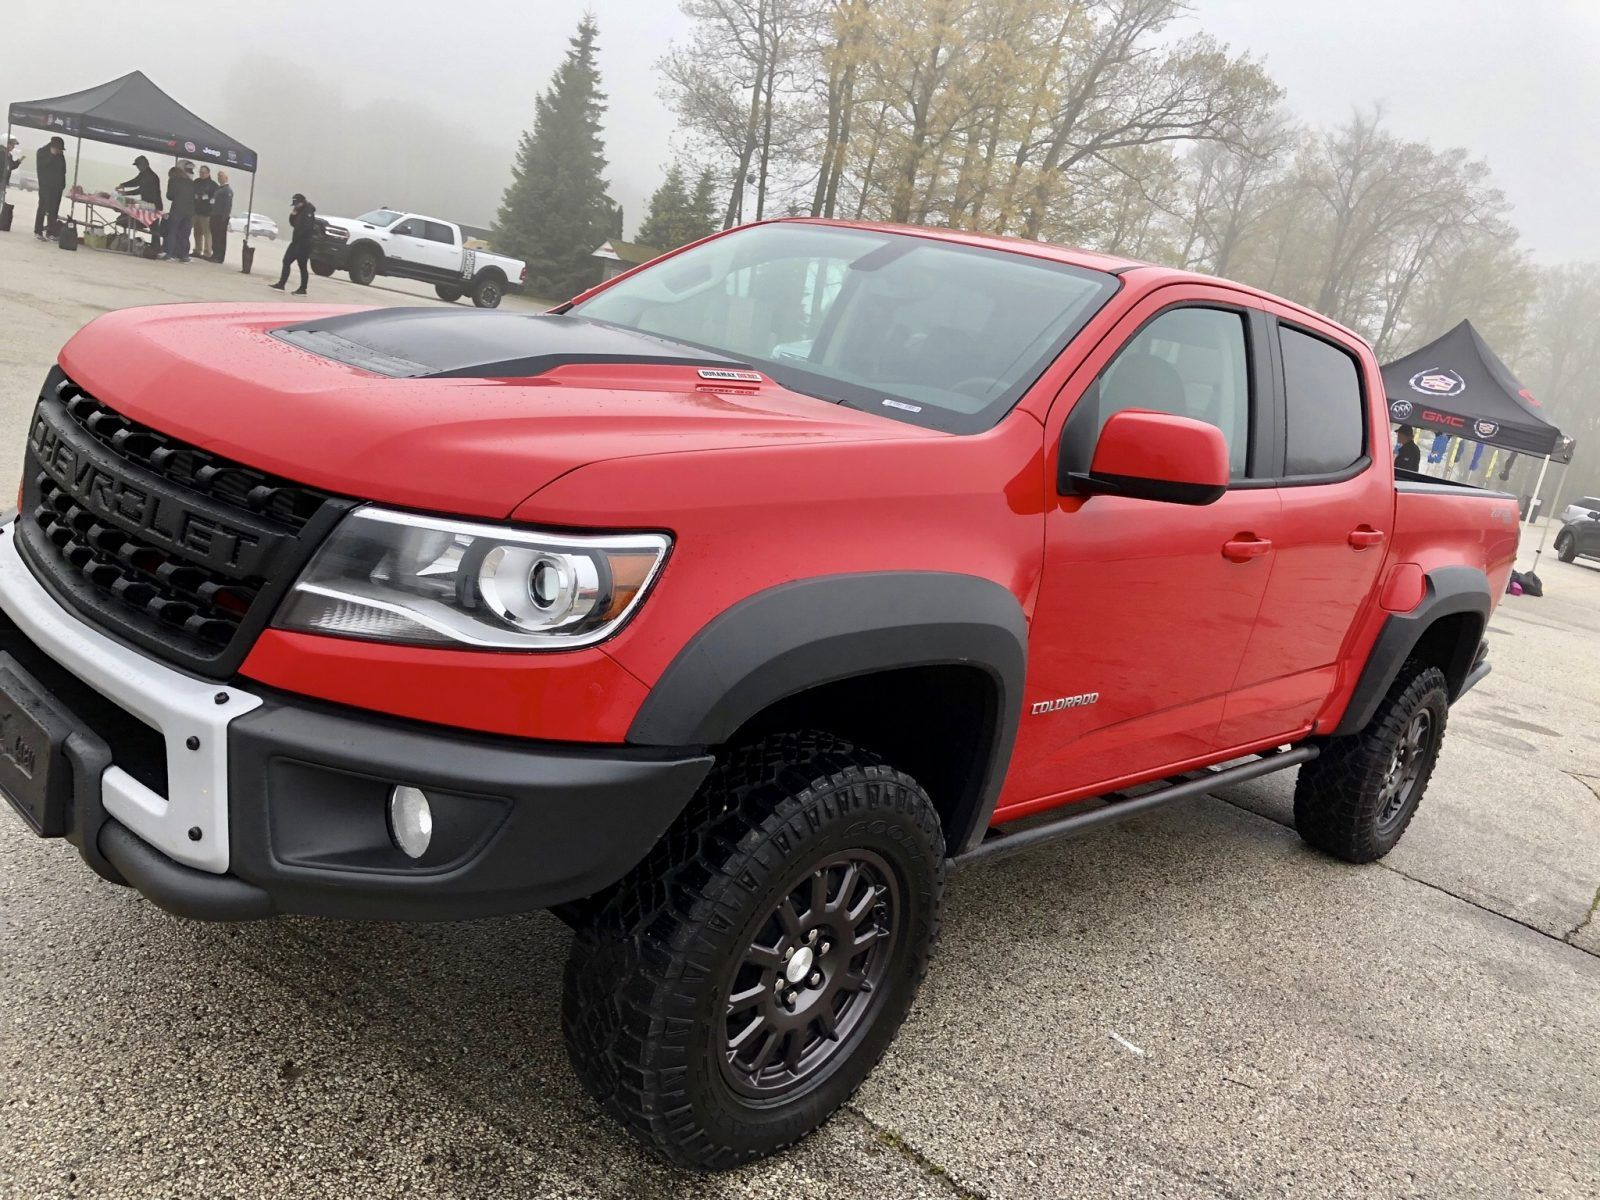 2019 Chevrolet Colorado Zr2 Bison Aev 2 8l Diesel First Drive Review Car Shopping Chevrolet Colorado Chevrolet Expedition Vehicle